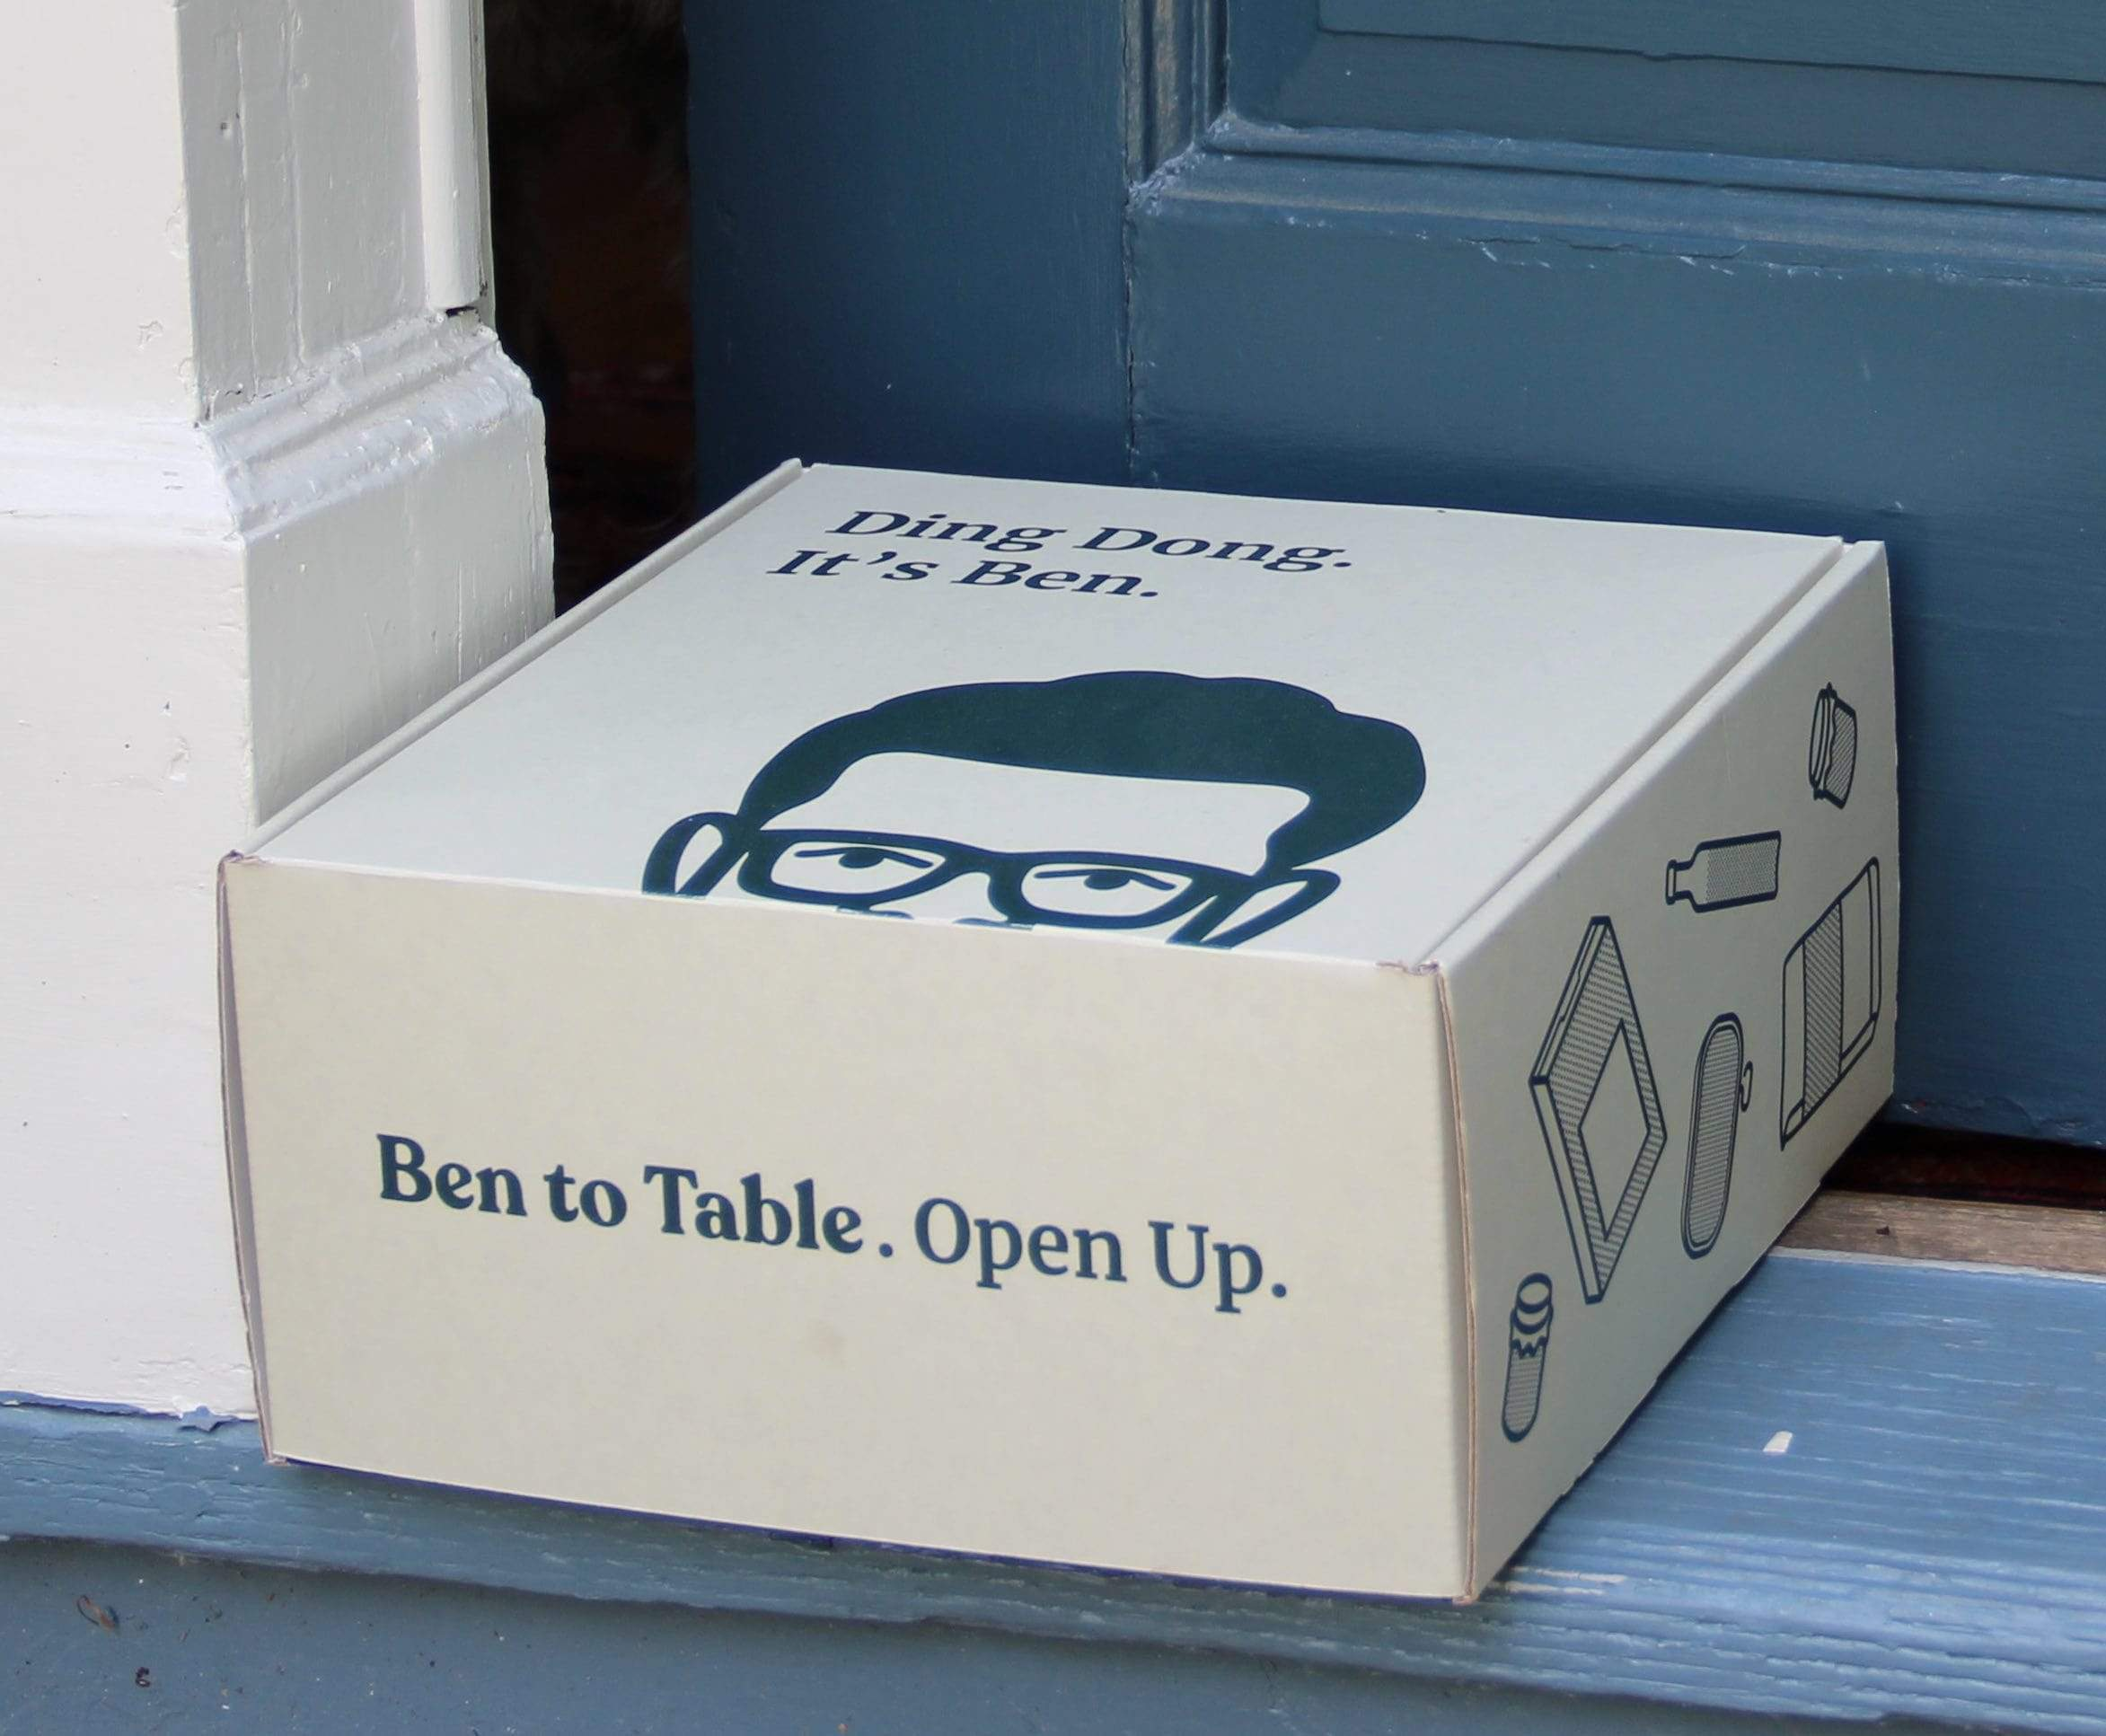 Ben to Table Special offer Warehouse Clearout Box: Amazing deals on gourmet pantry items!